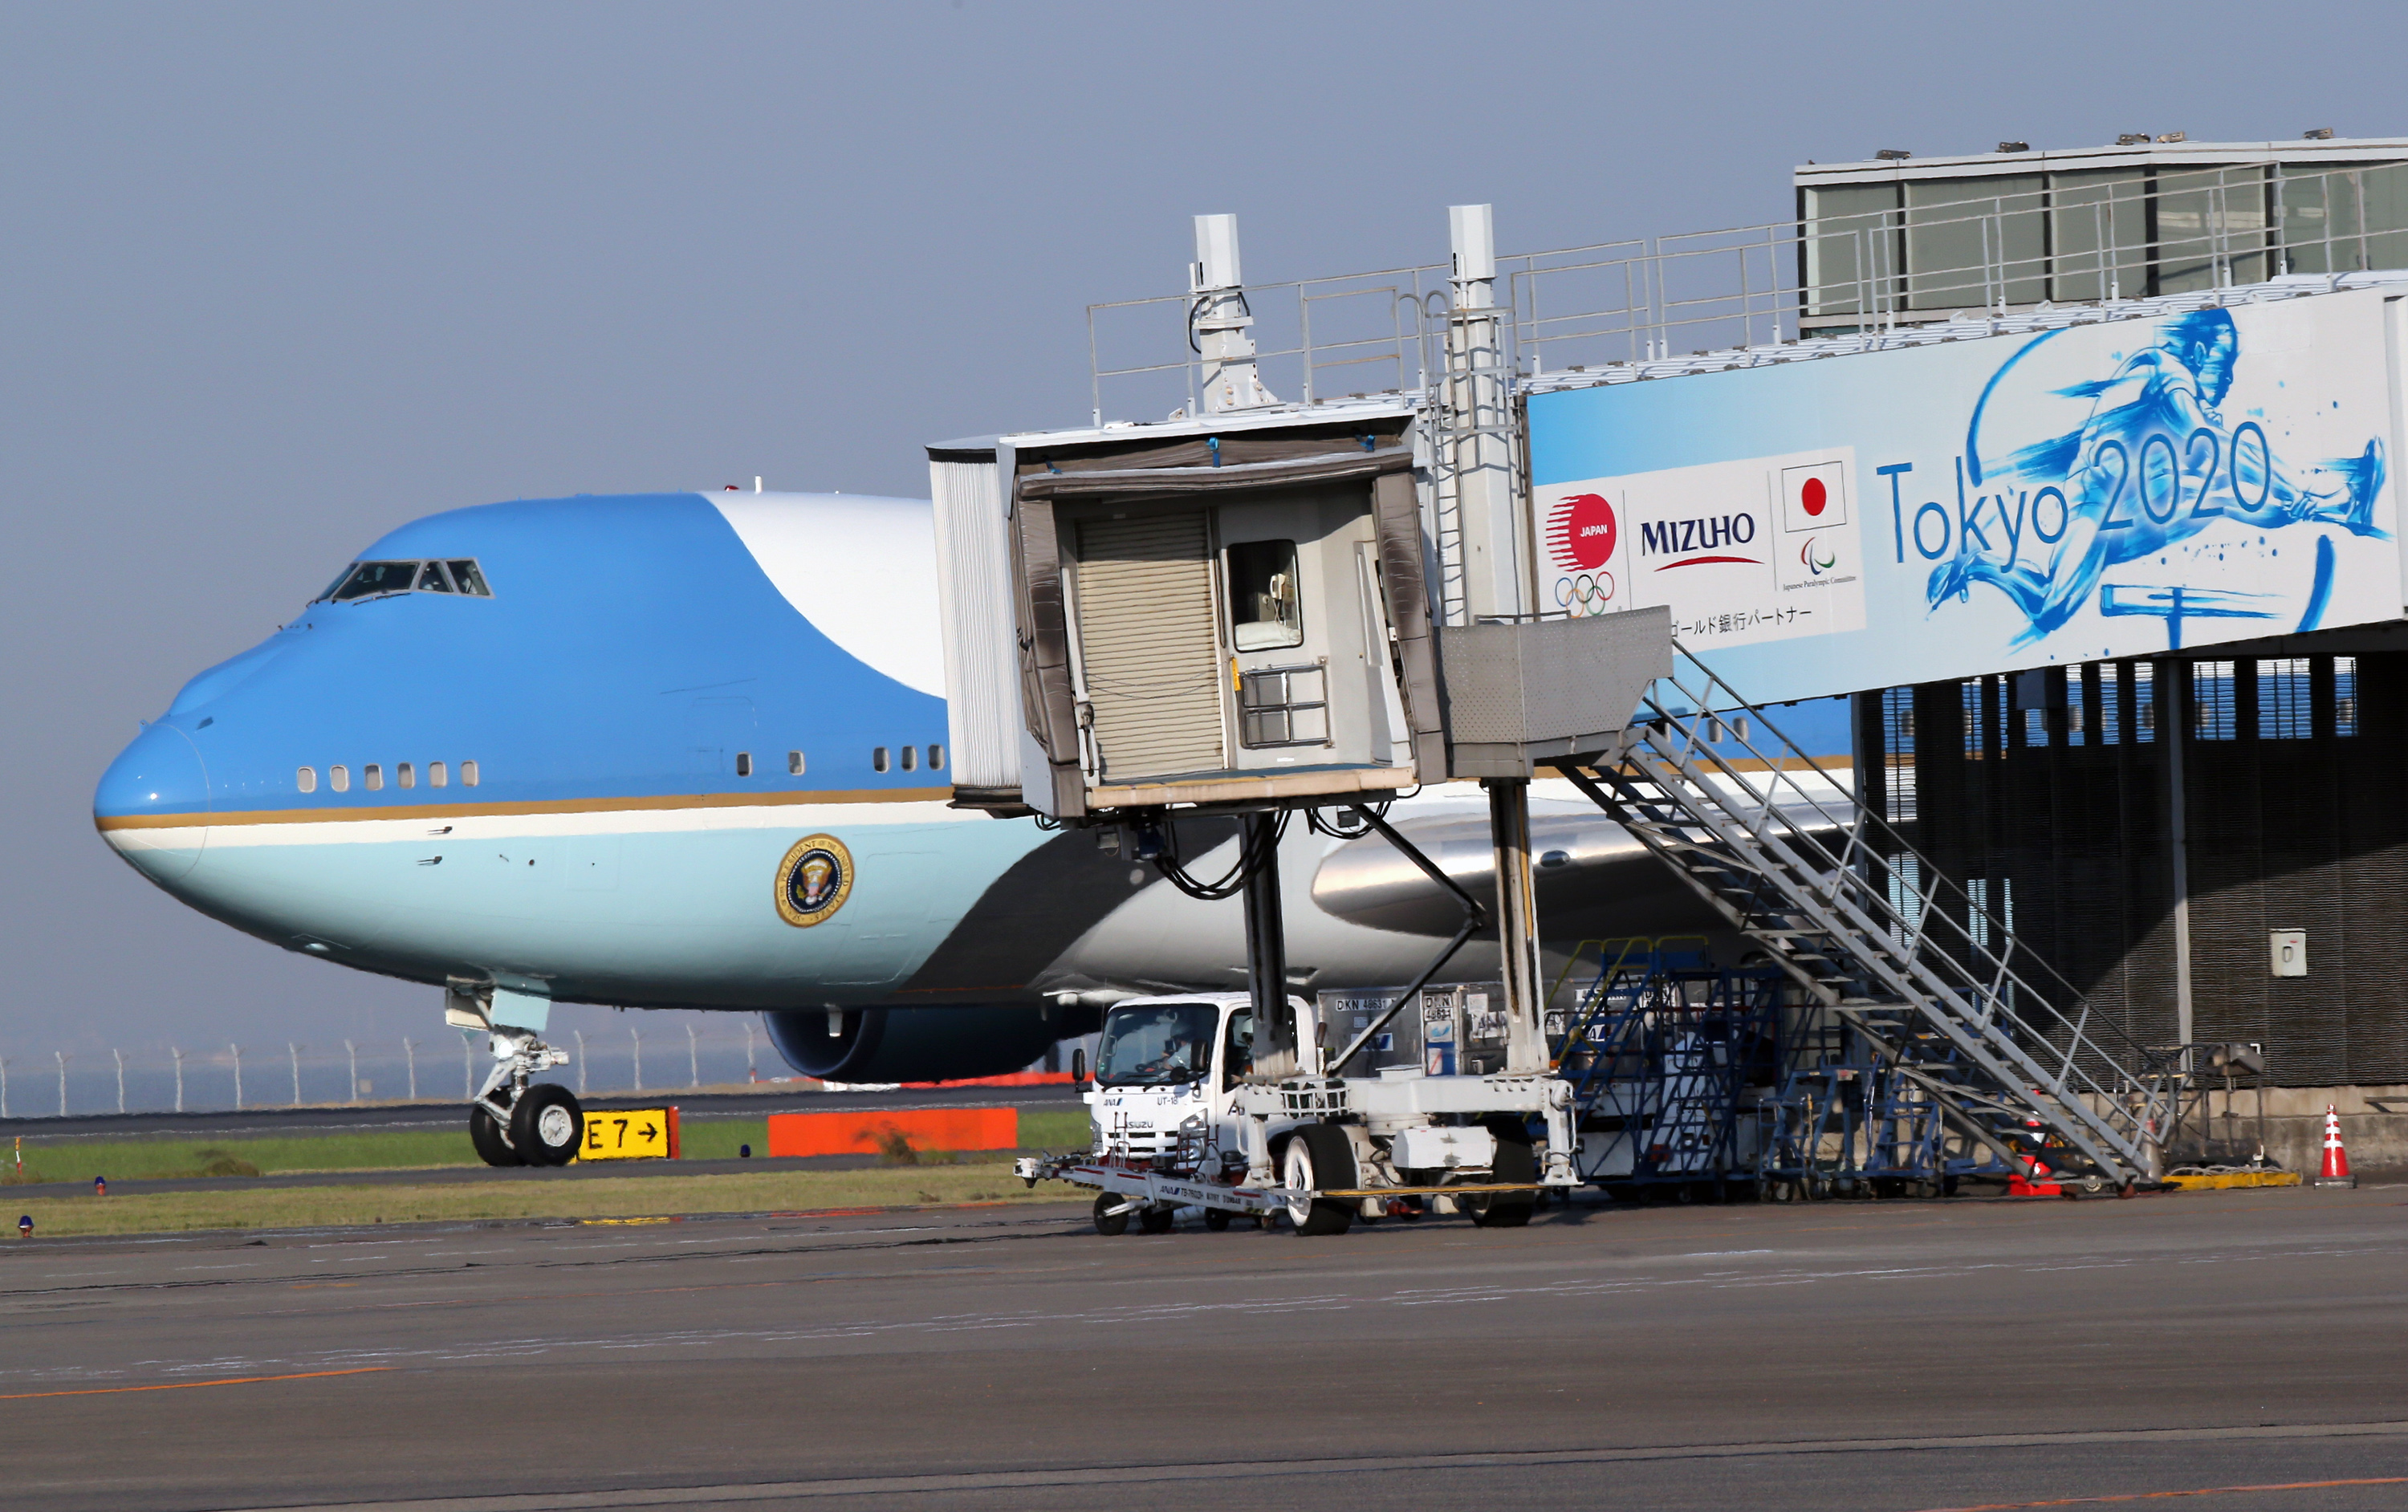 Air Force One carrying US President Donald Trump and first lady Melania Trump arrives at Haneda International Airport in Tokyo.